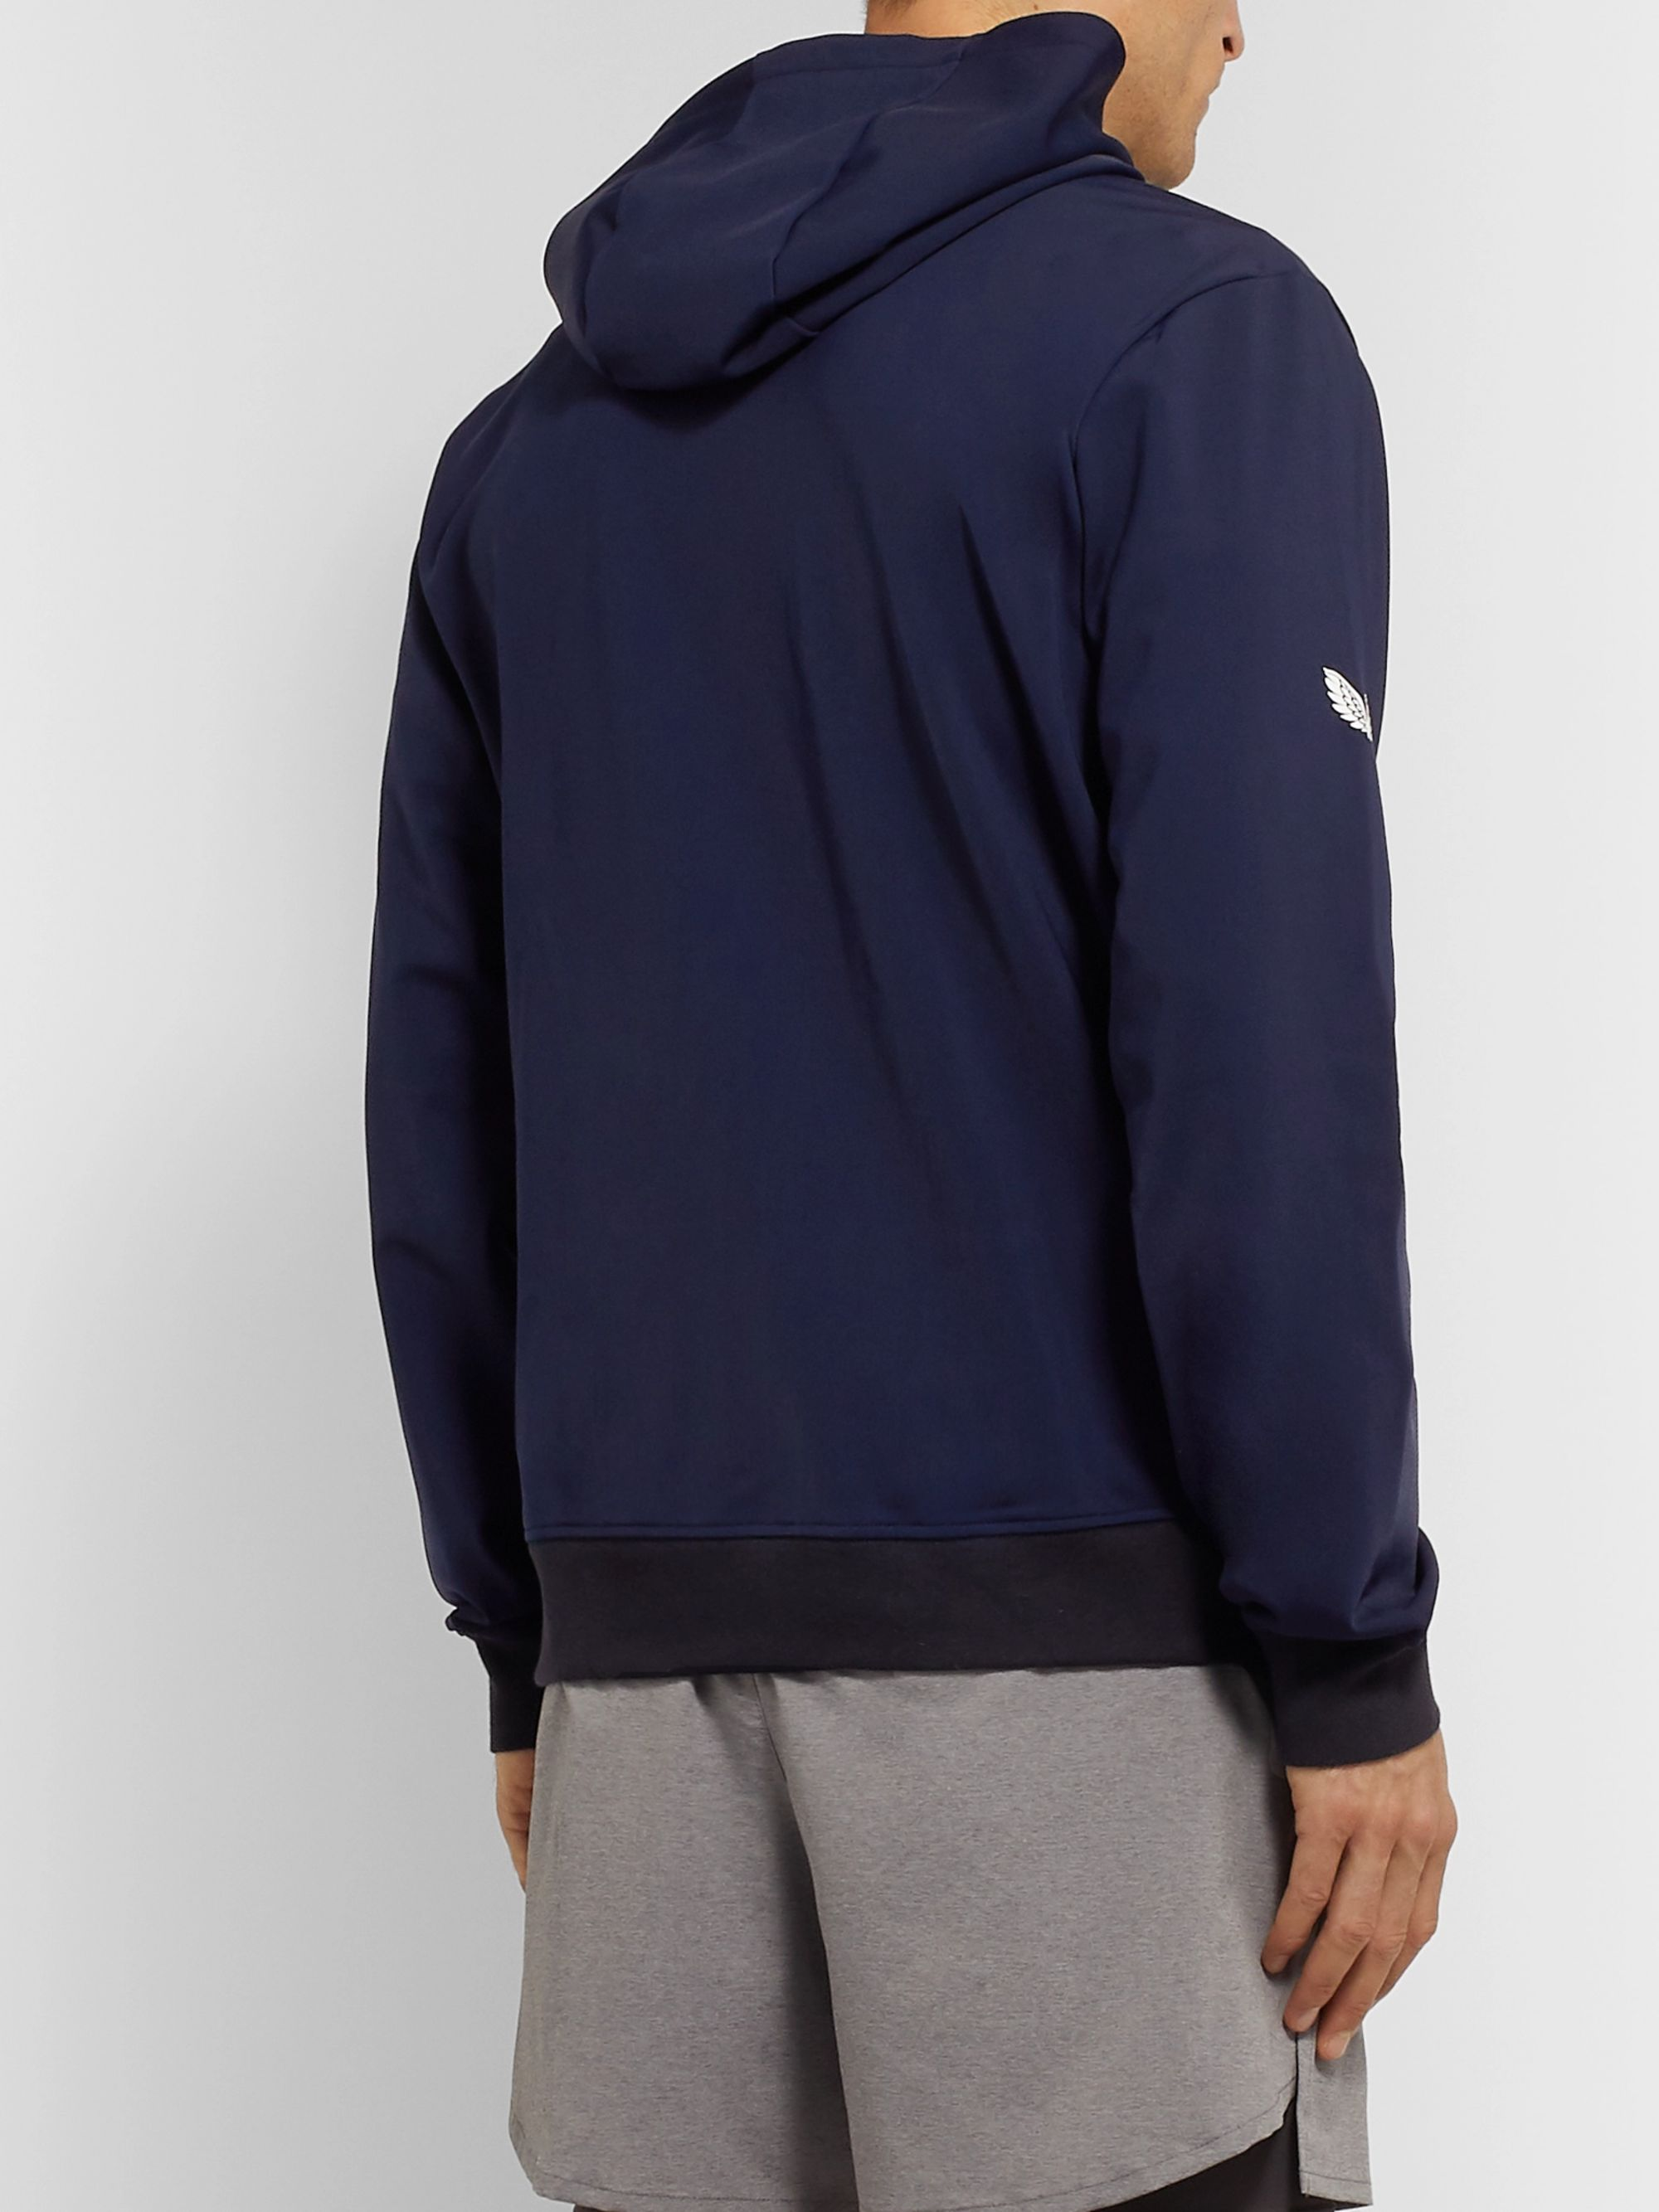 CASTORE Espin Stretch Tech-Jersey Hooded Jacket